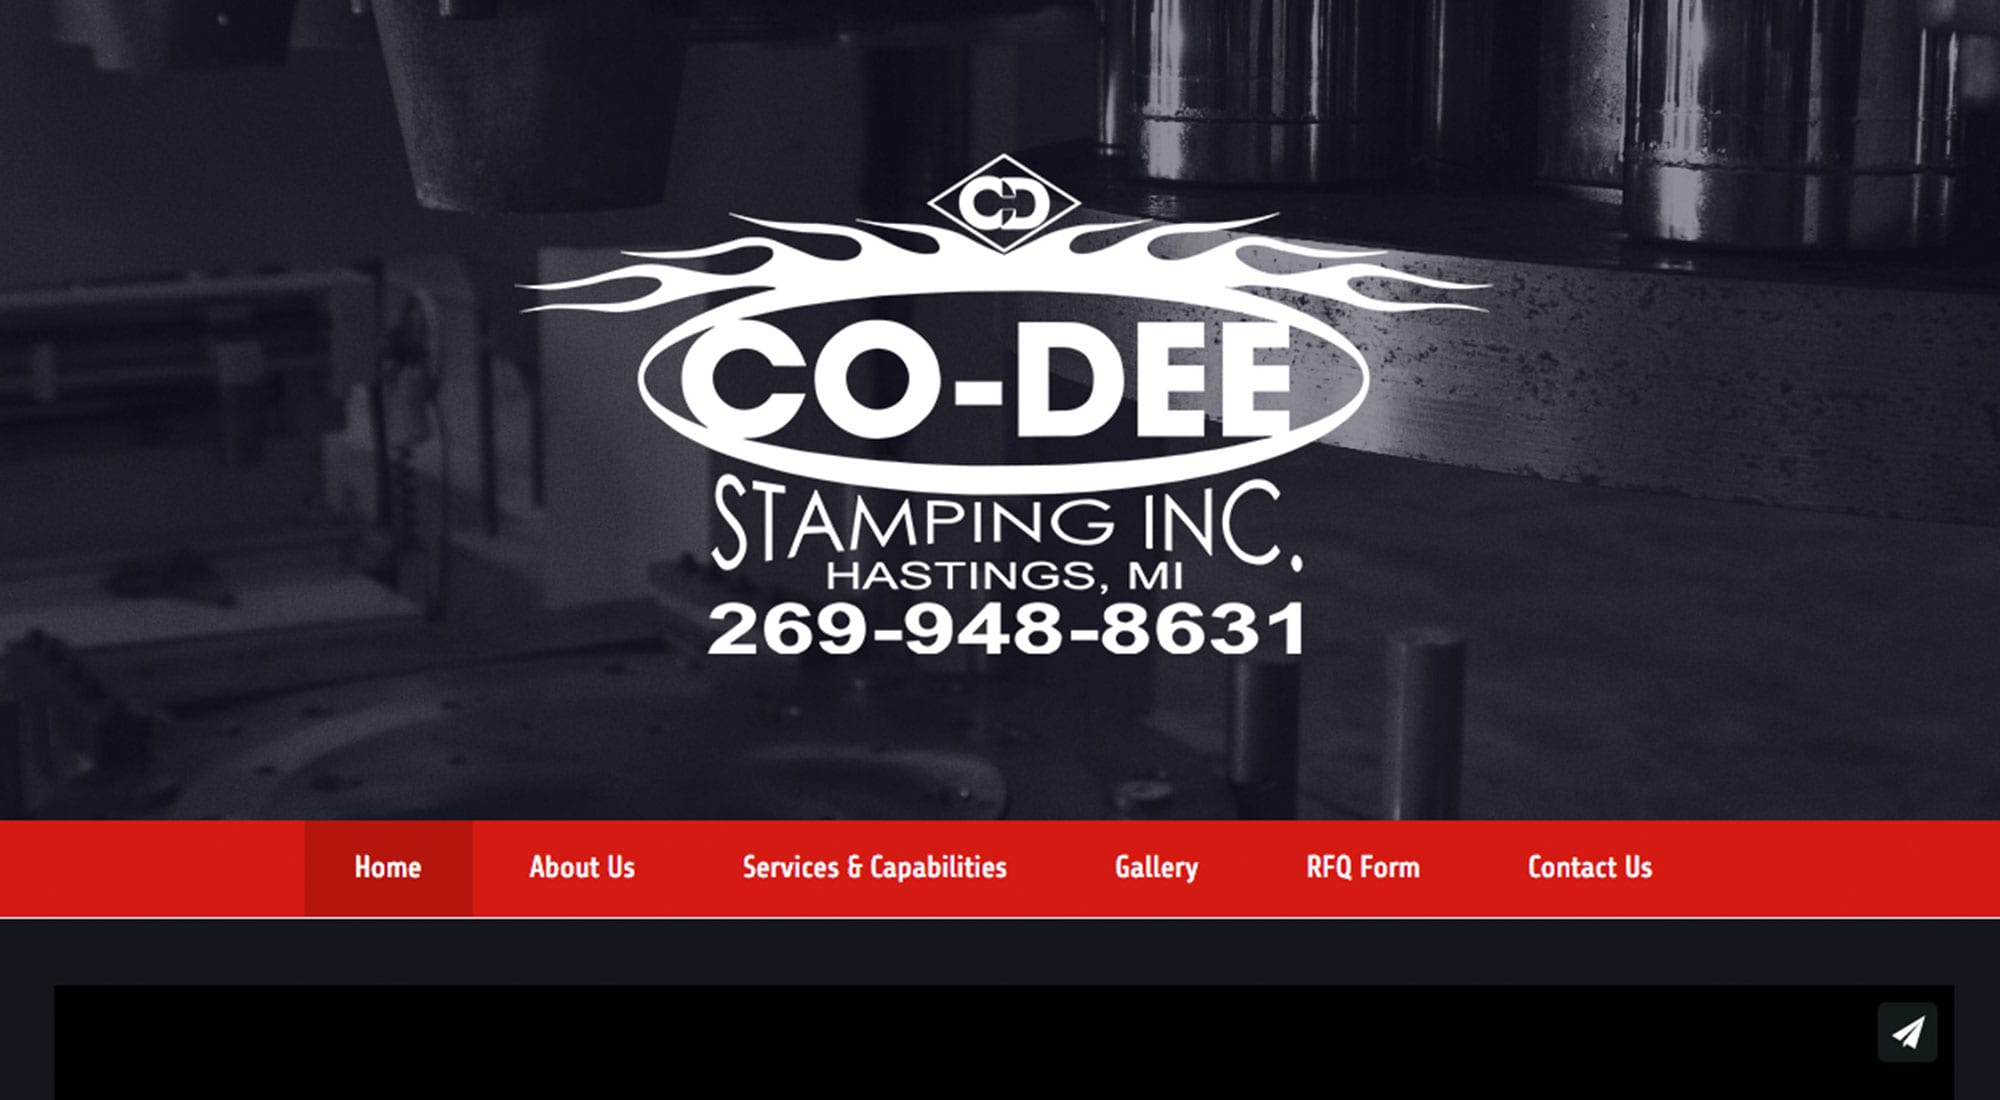 Co-Dee Stamping Hastings MI Website design by Pixelvine Creative